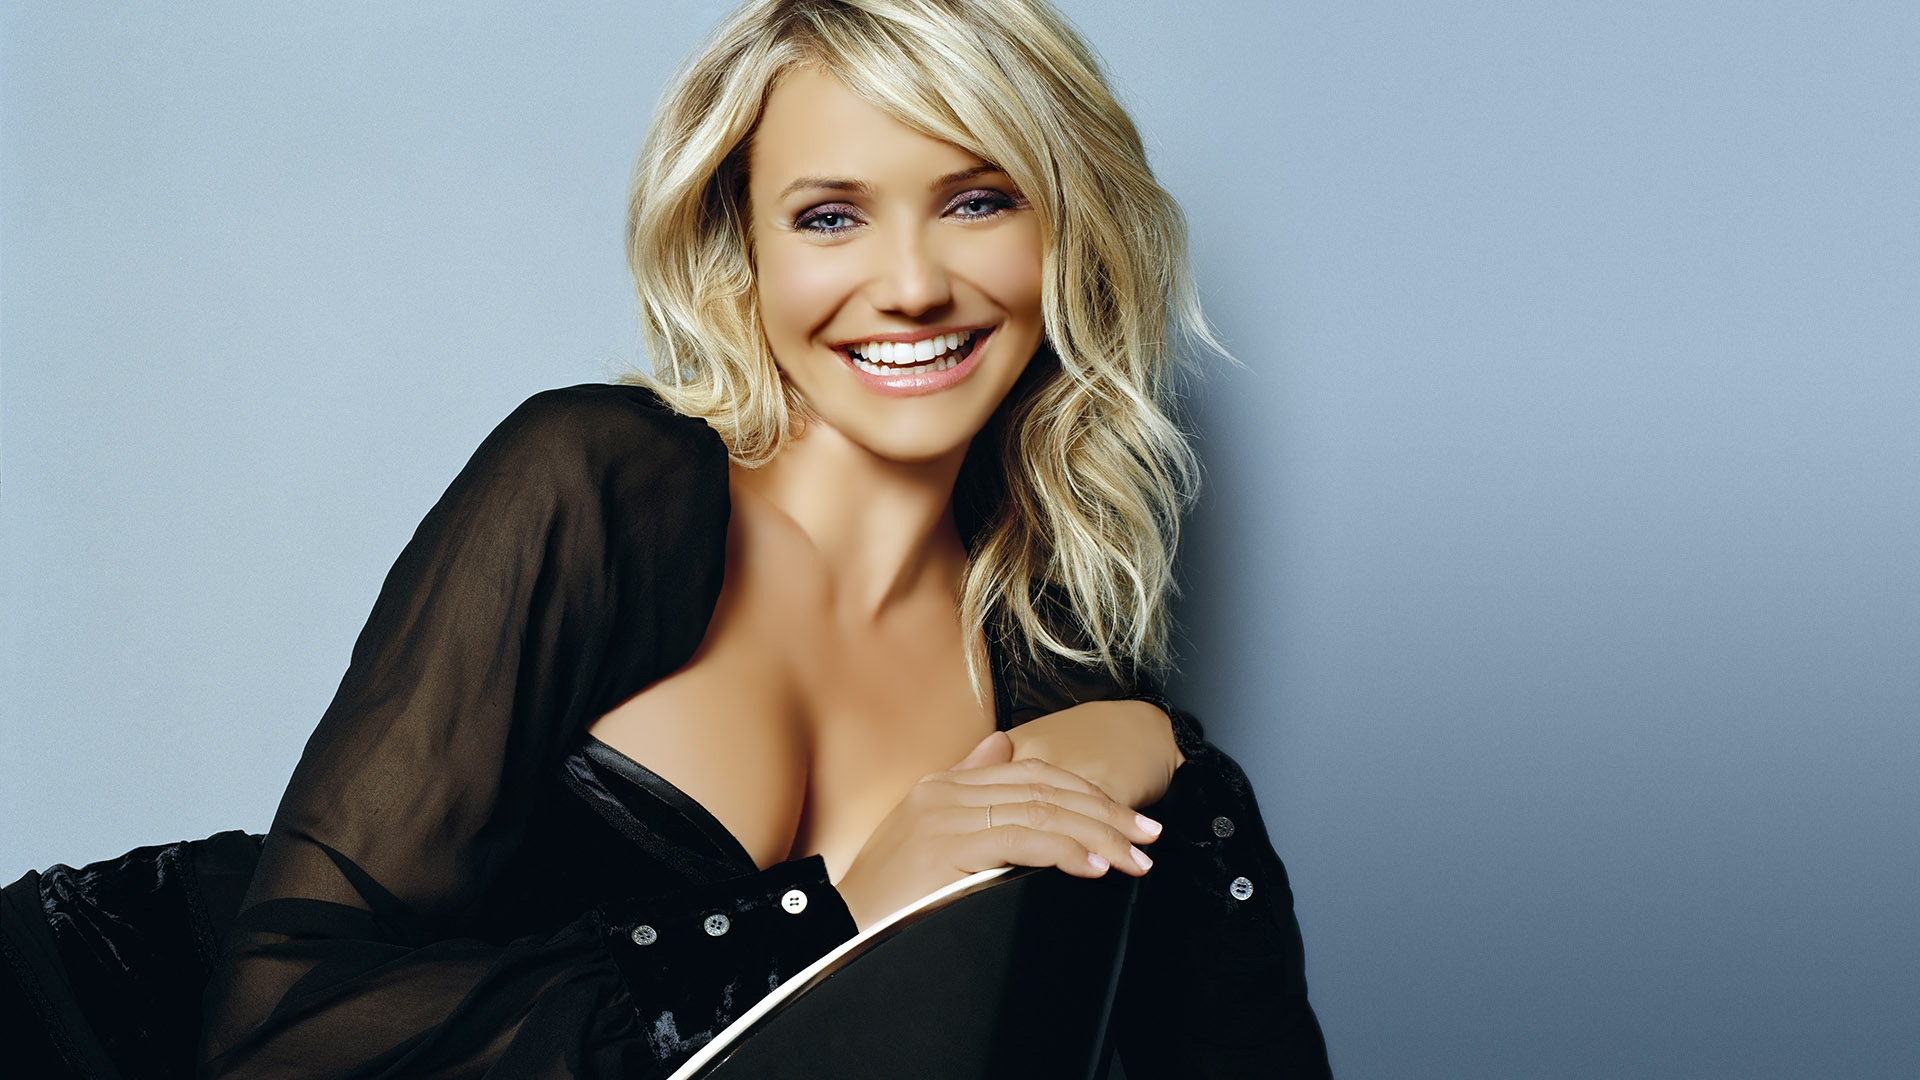 cameron diaz wallpaper hd wallpaper 875855. Black Bedroom Furniture Sets. Home Design Ideas